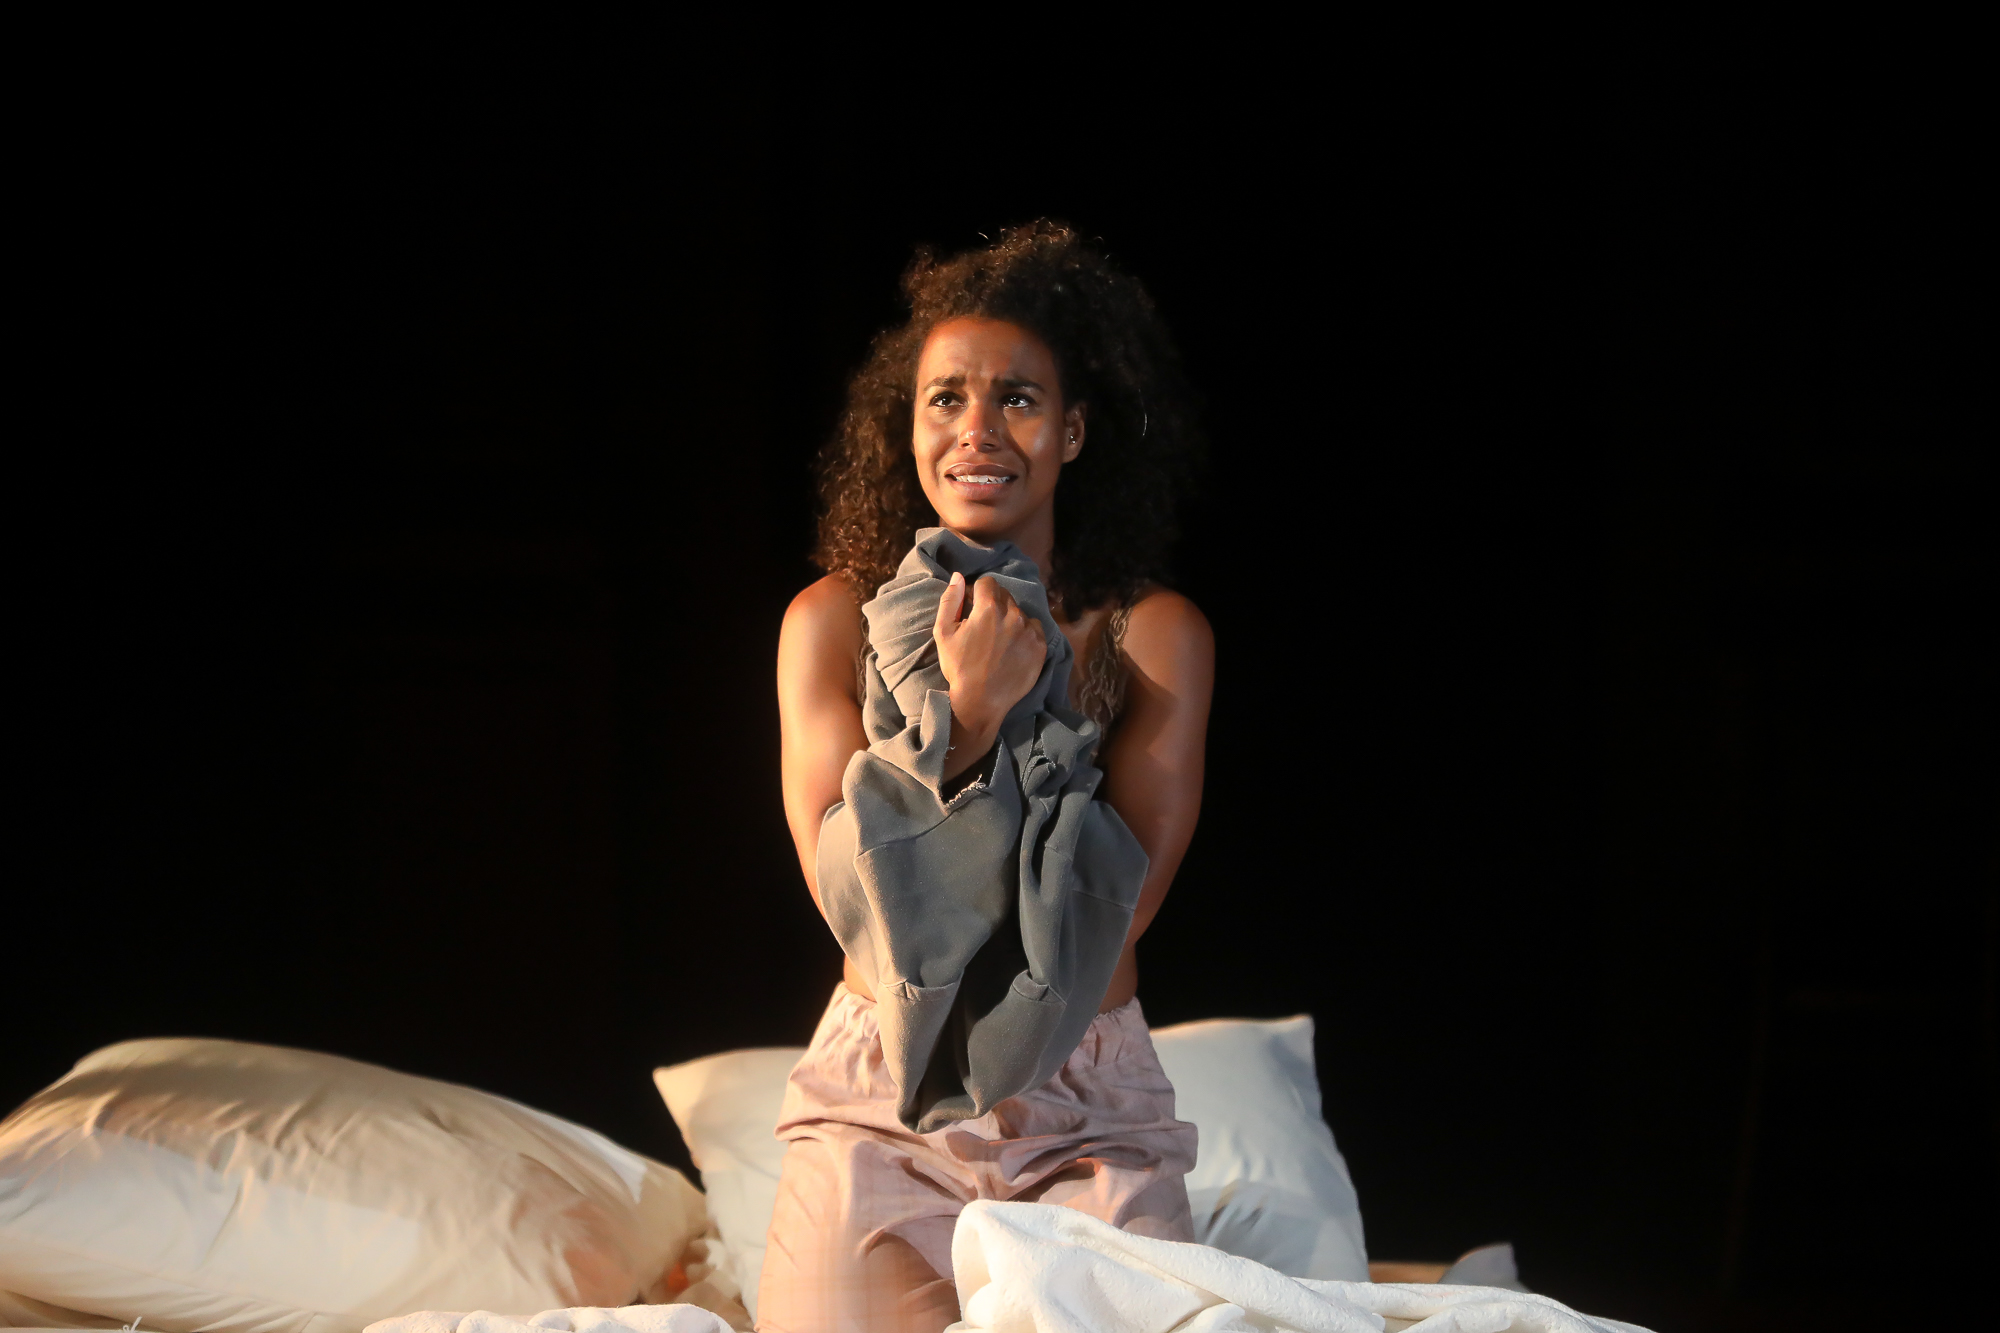 Photo of Danaya Esperanza as Juliet in Romeo & Juliet by Tony Powell.